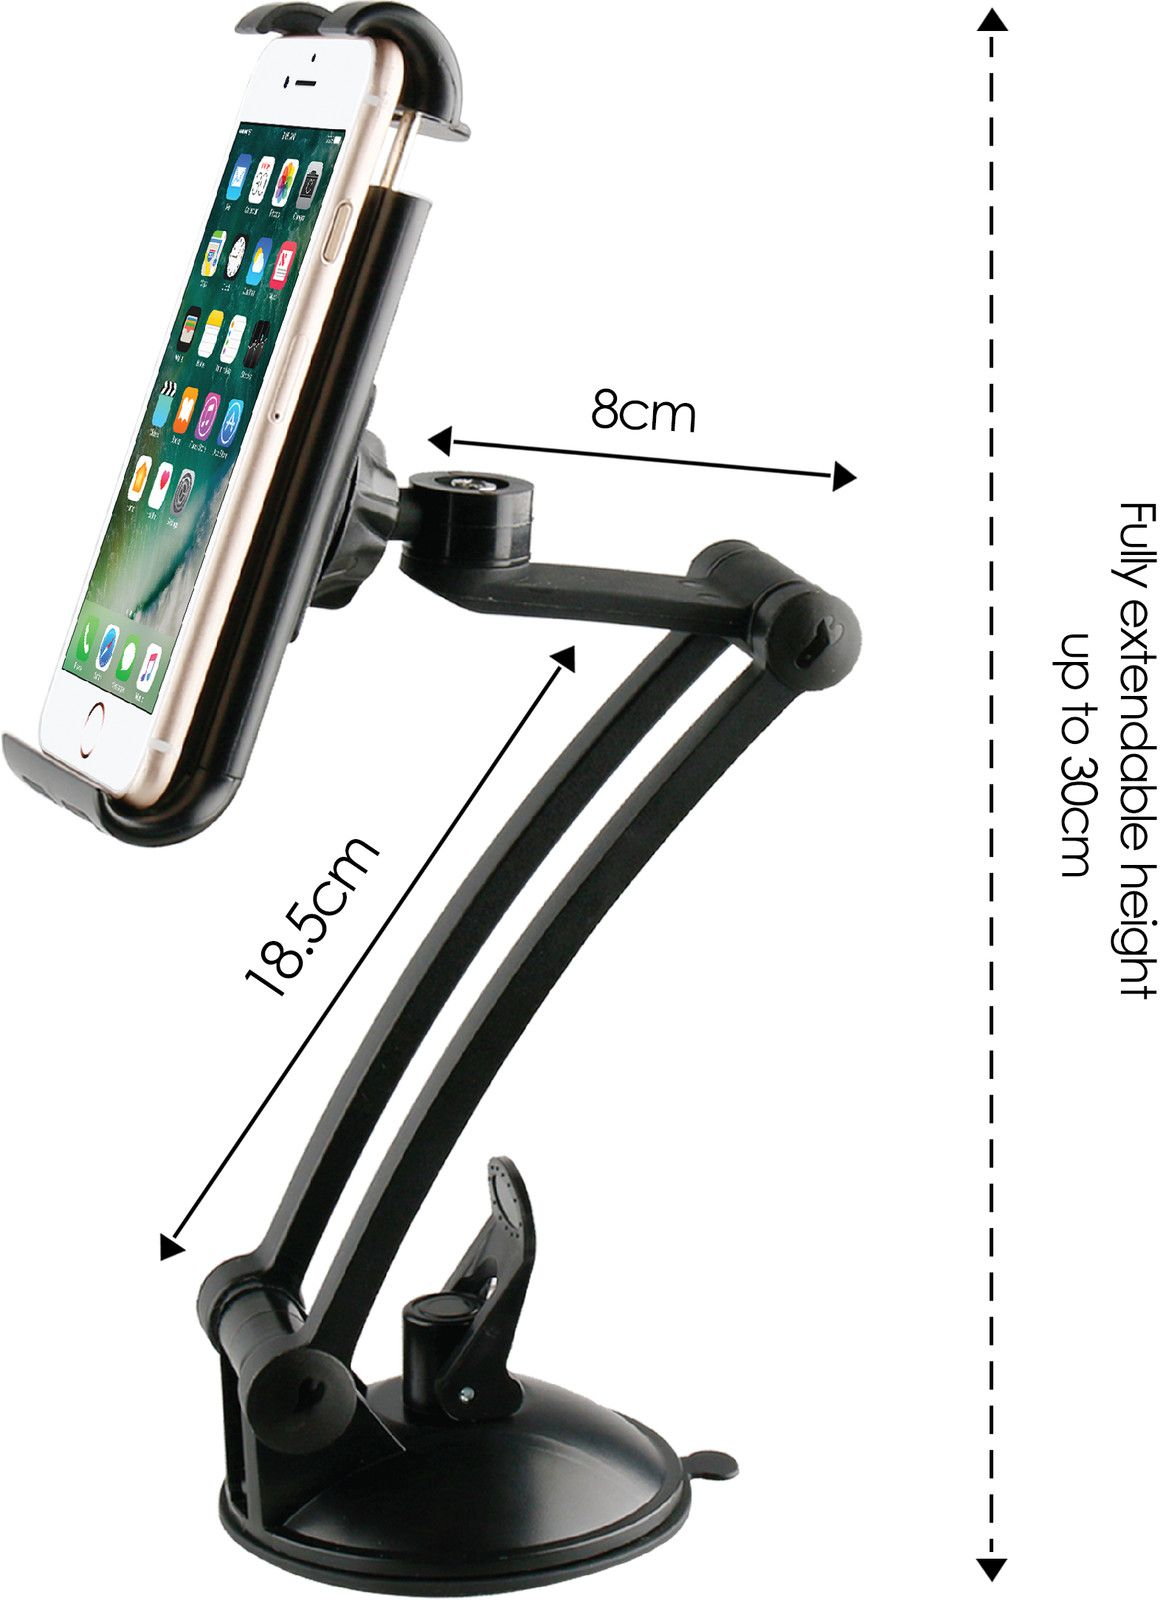 Desire2 Extended Arm Suction Holder (iPad)